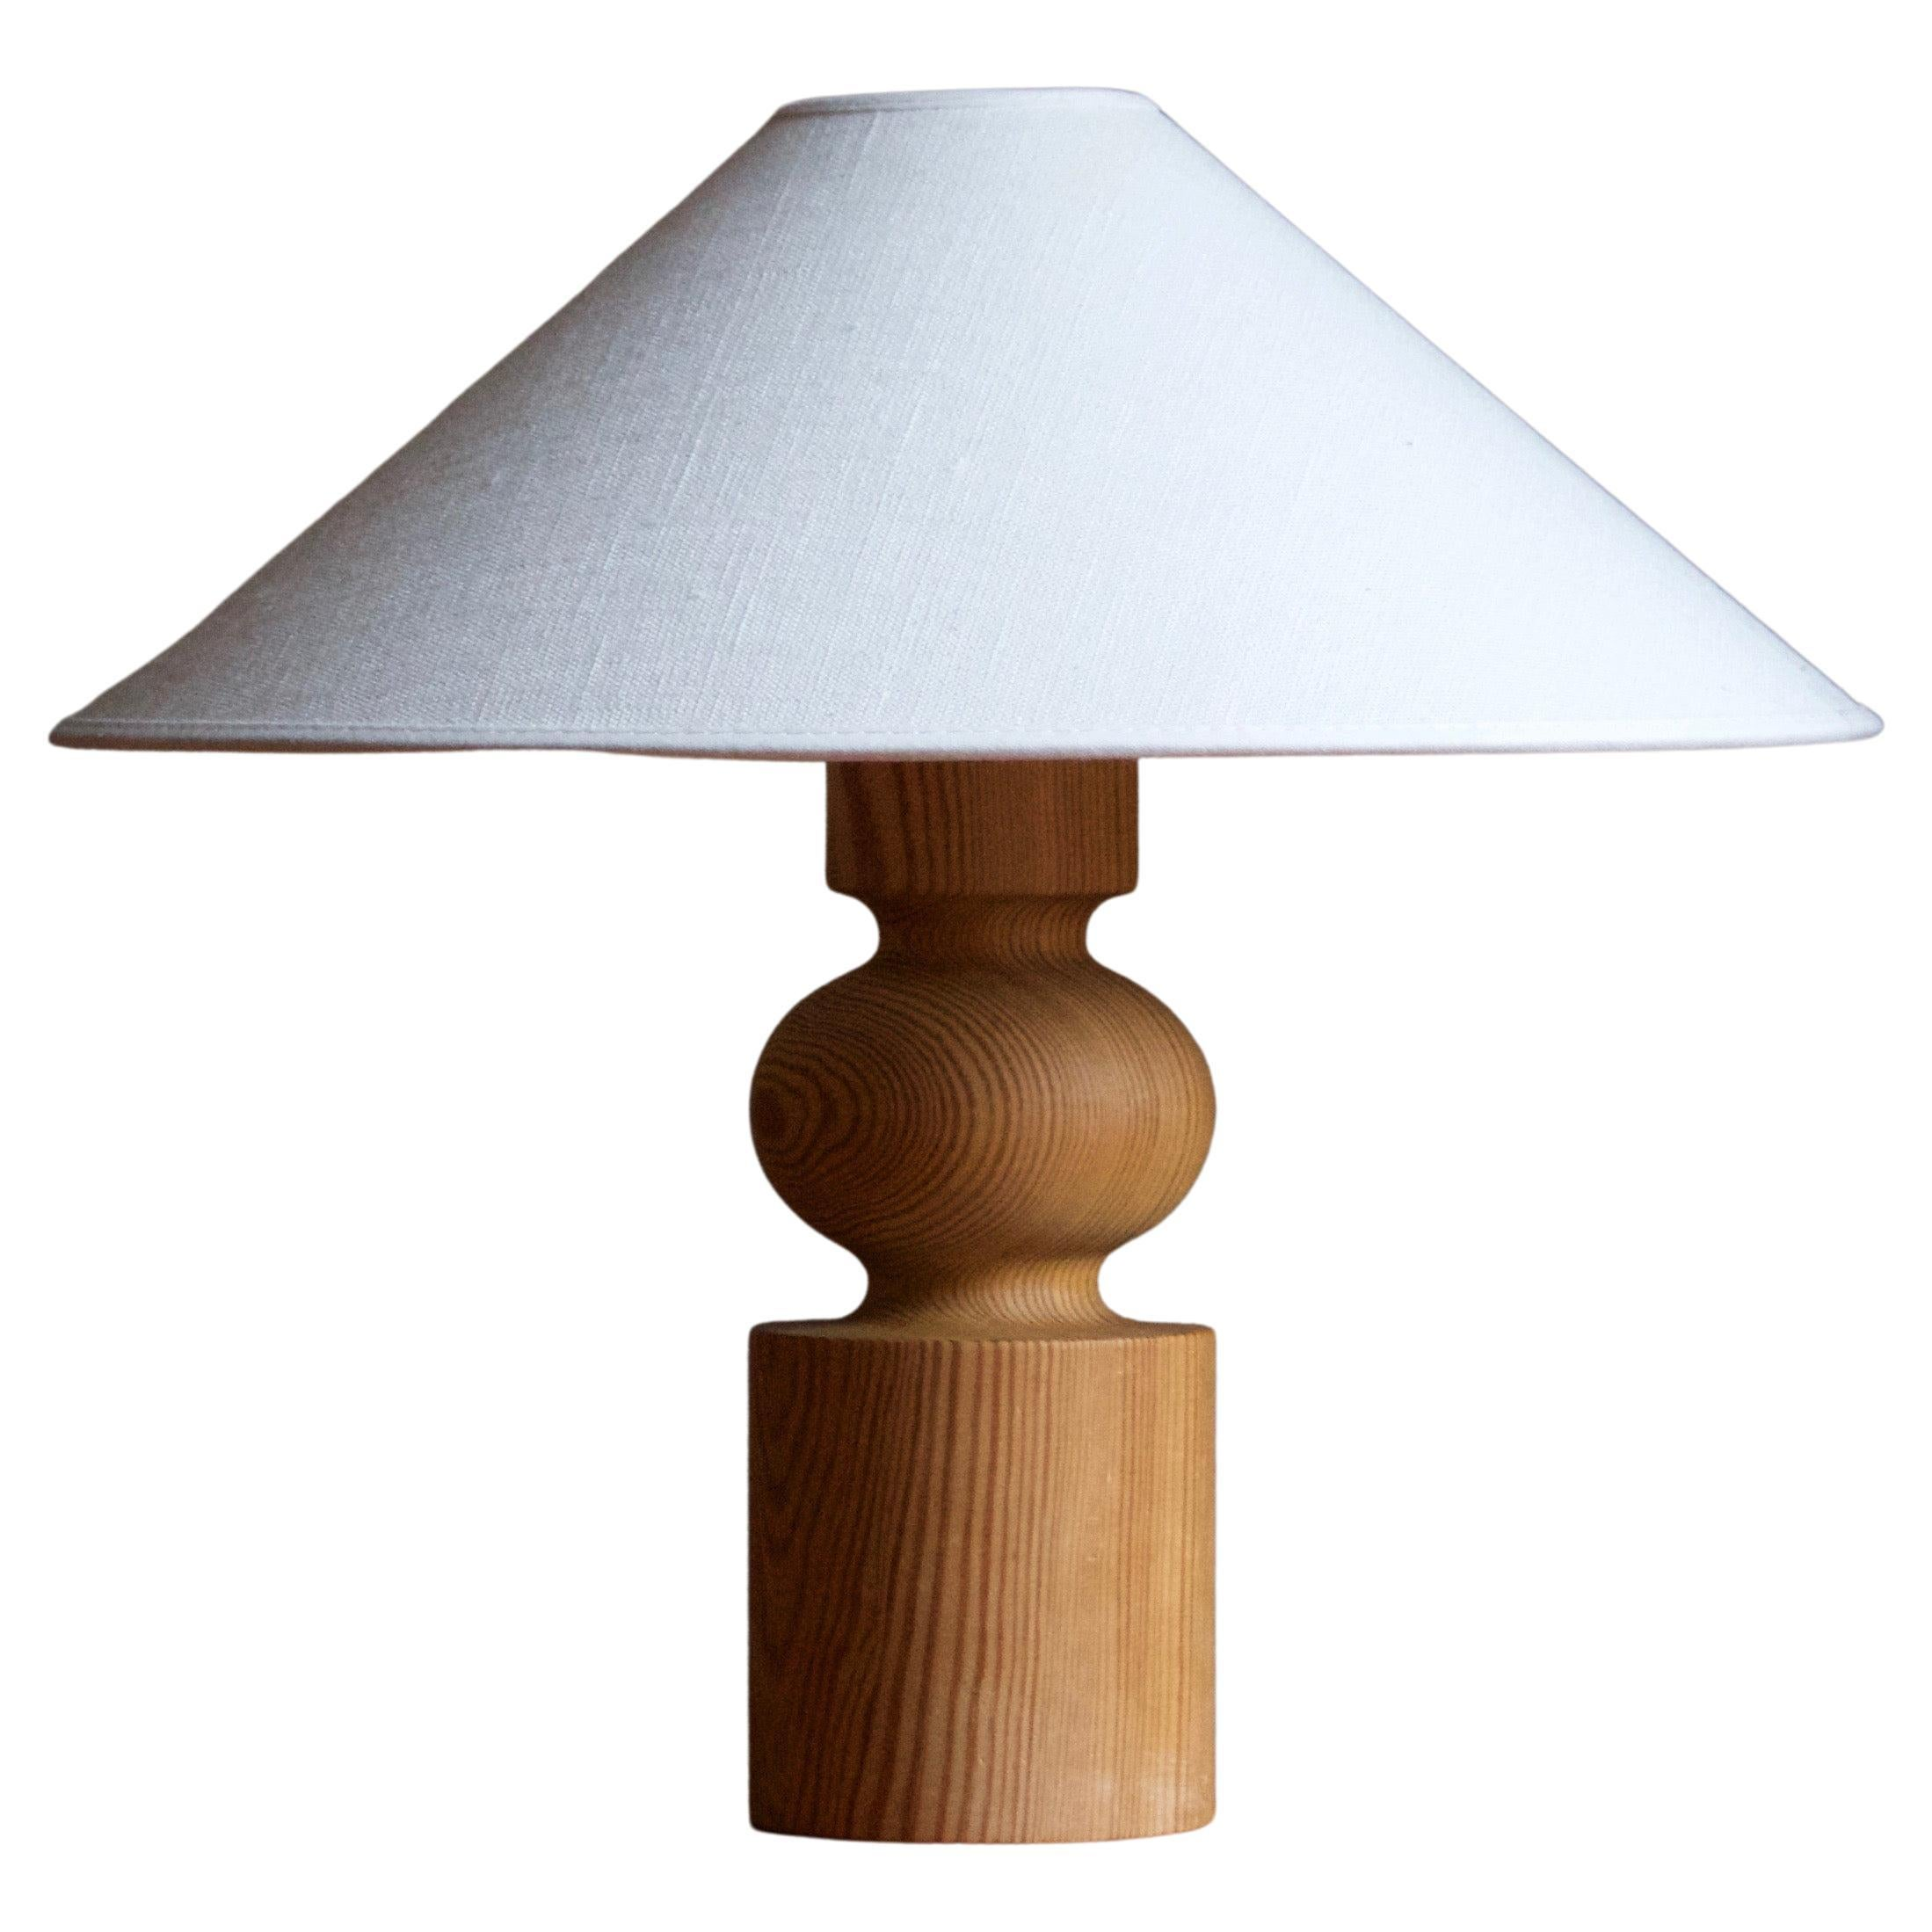 Uno Kristiansson, Table Lamp, Turned Solid Pine, Luxus, Sweden, 1970s